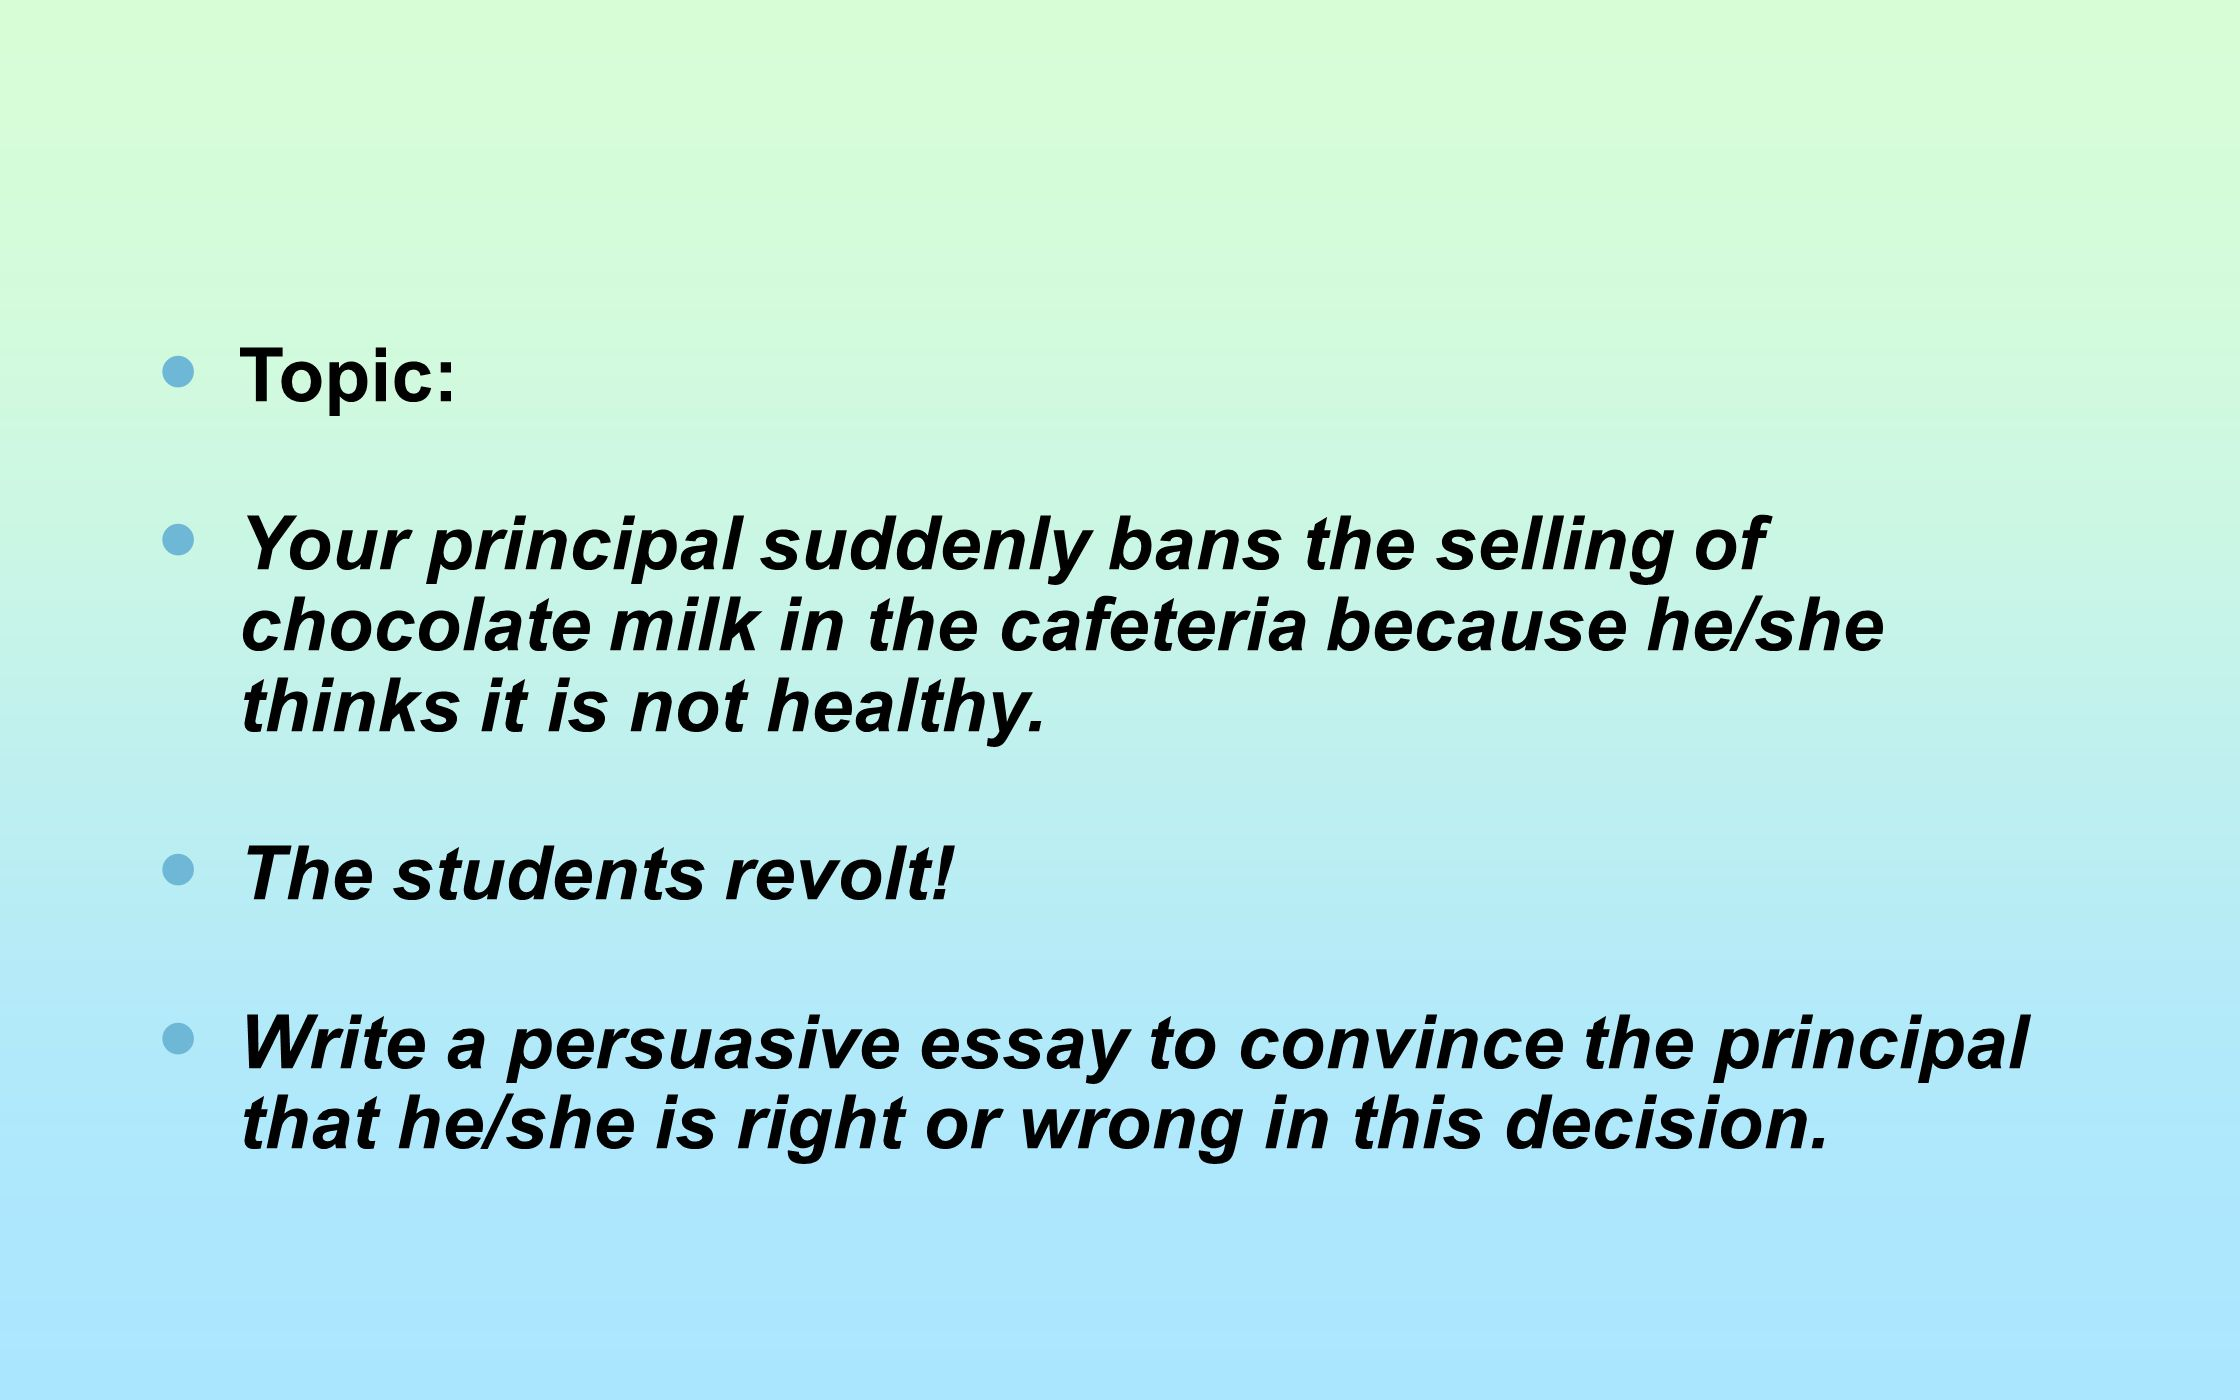 Topic: Your principal suddenly bans the selling of chocolate milk in the cafeteria because he/she thinks it is not healthy.